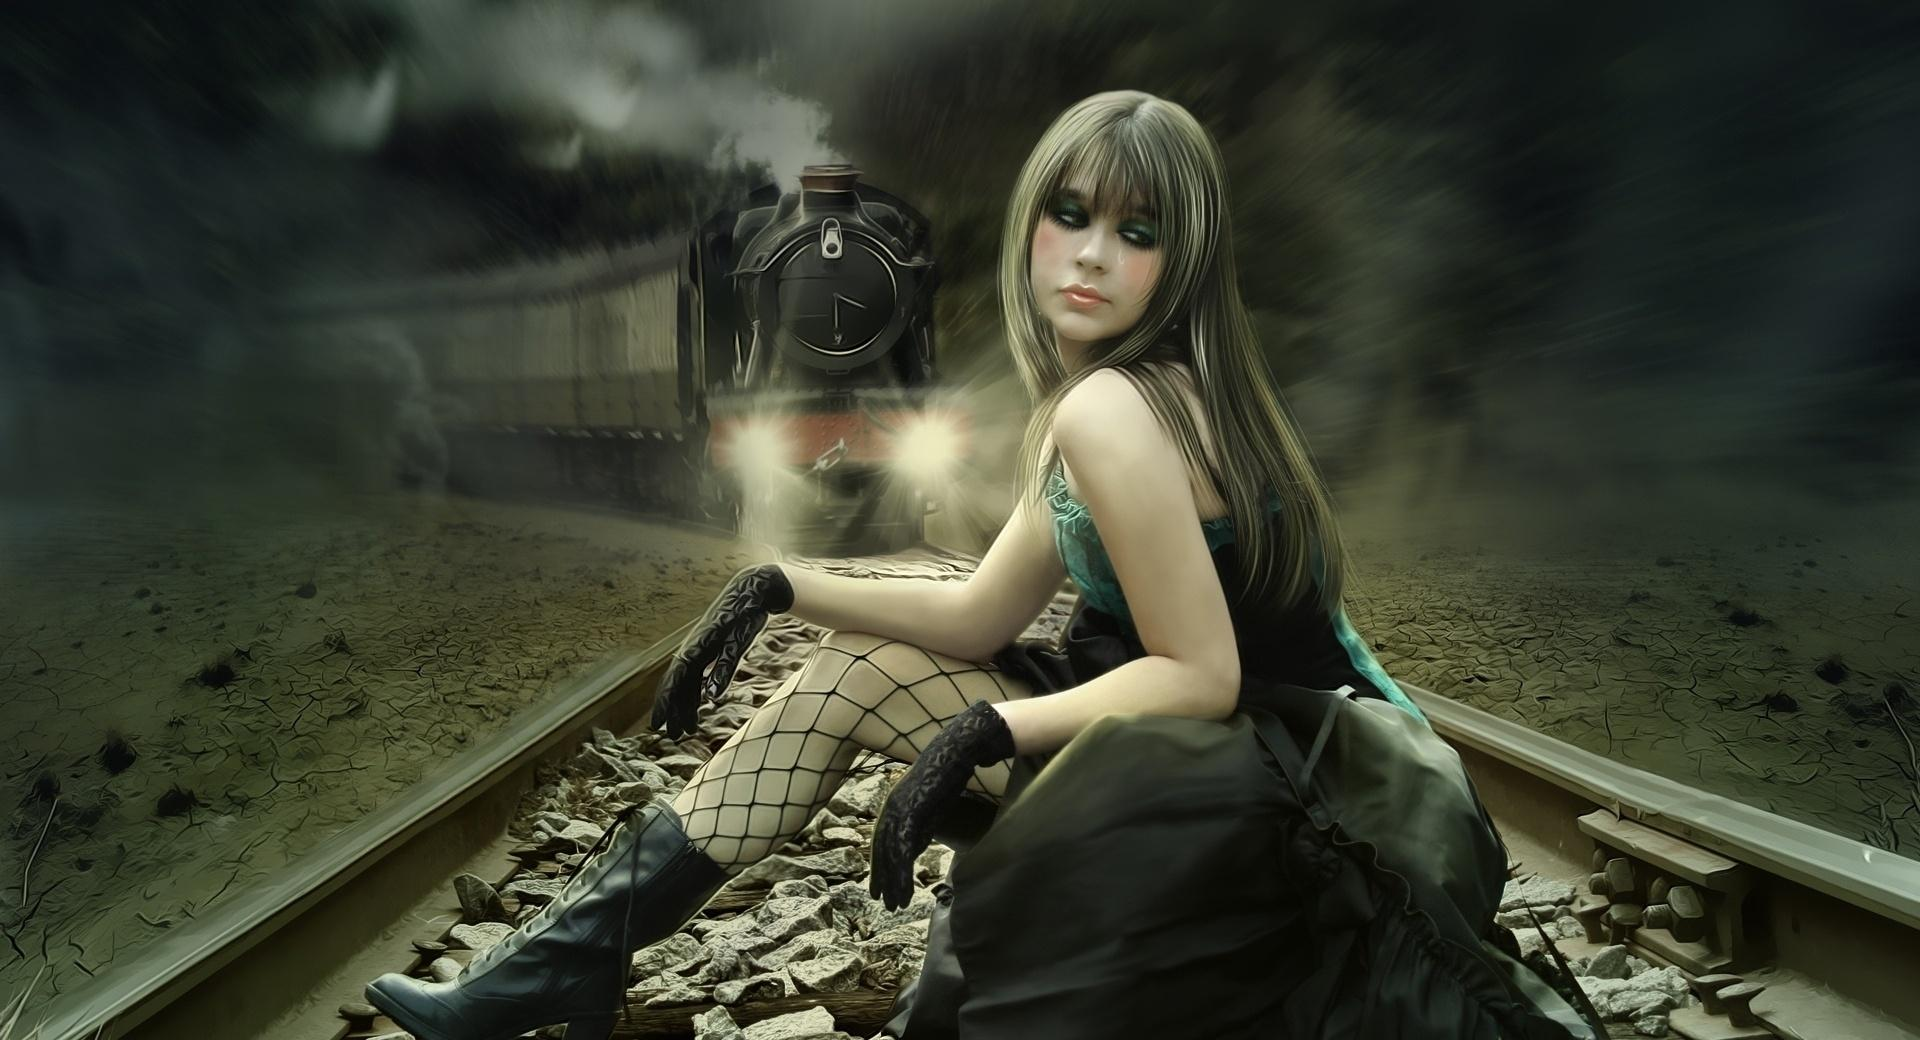 Girl On Rail Tracks Painting wallpapers HD quality